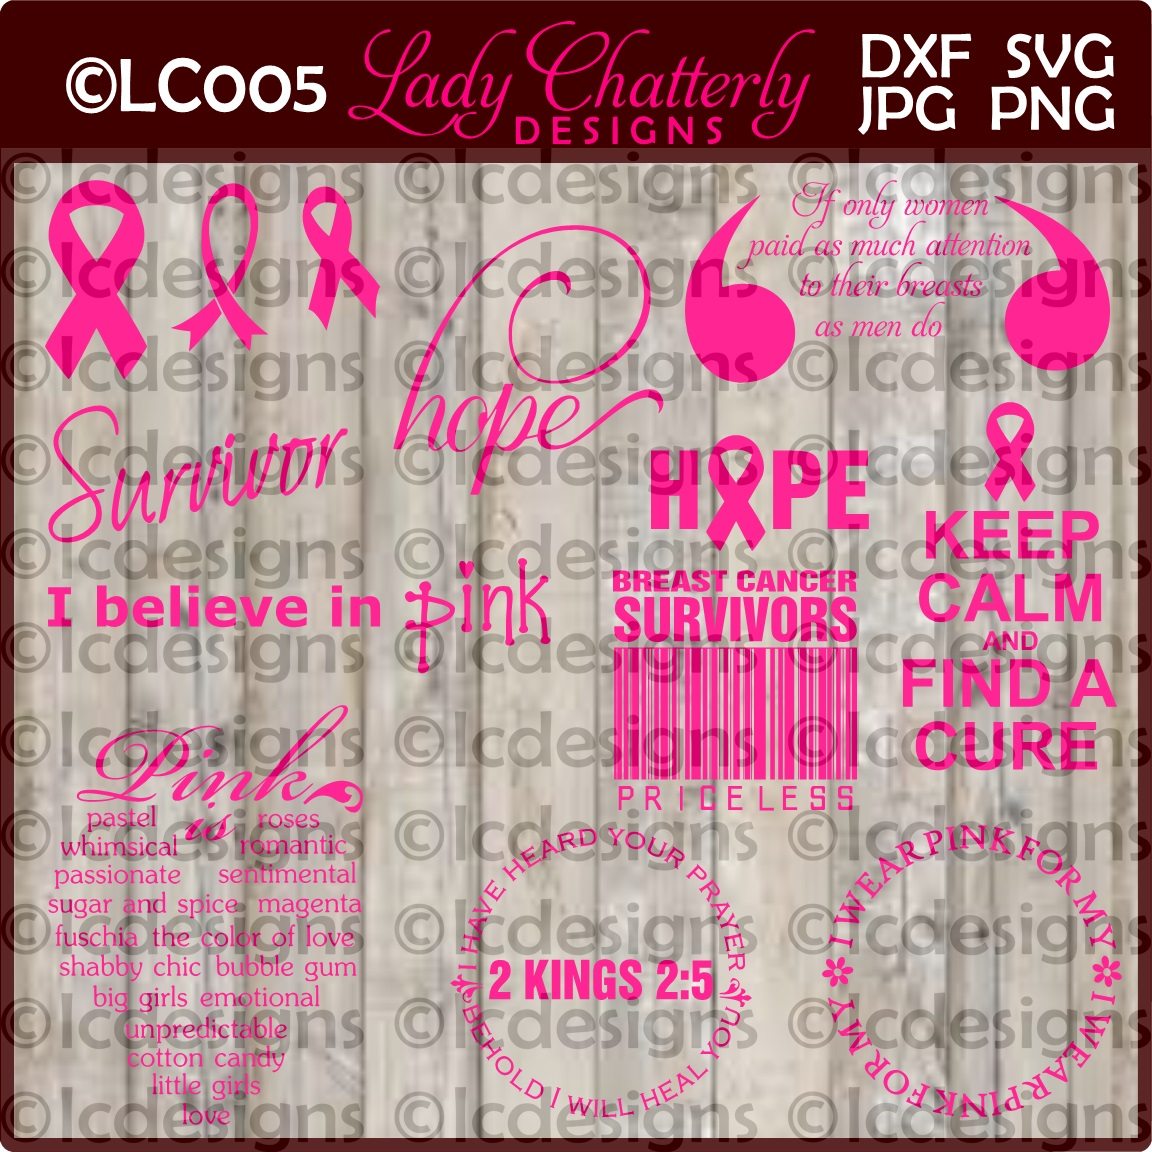 LC005 - Breast Cancer Designs example image 1